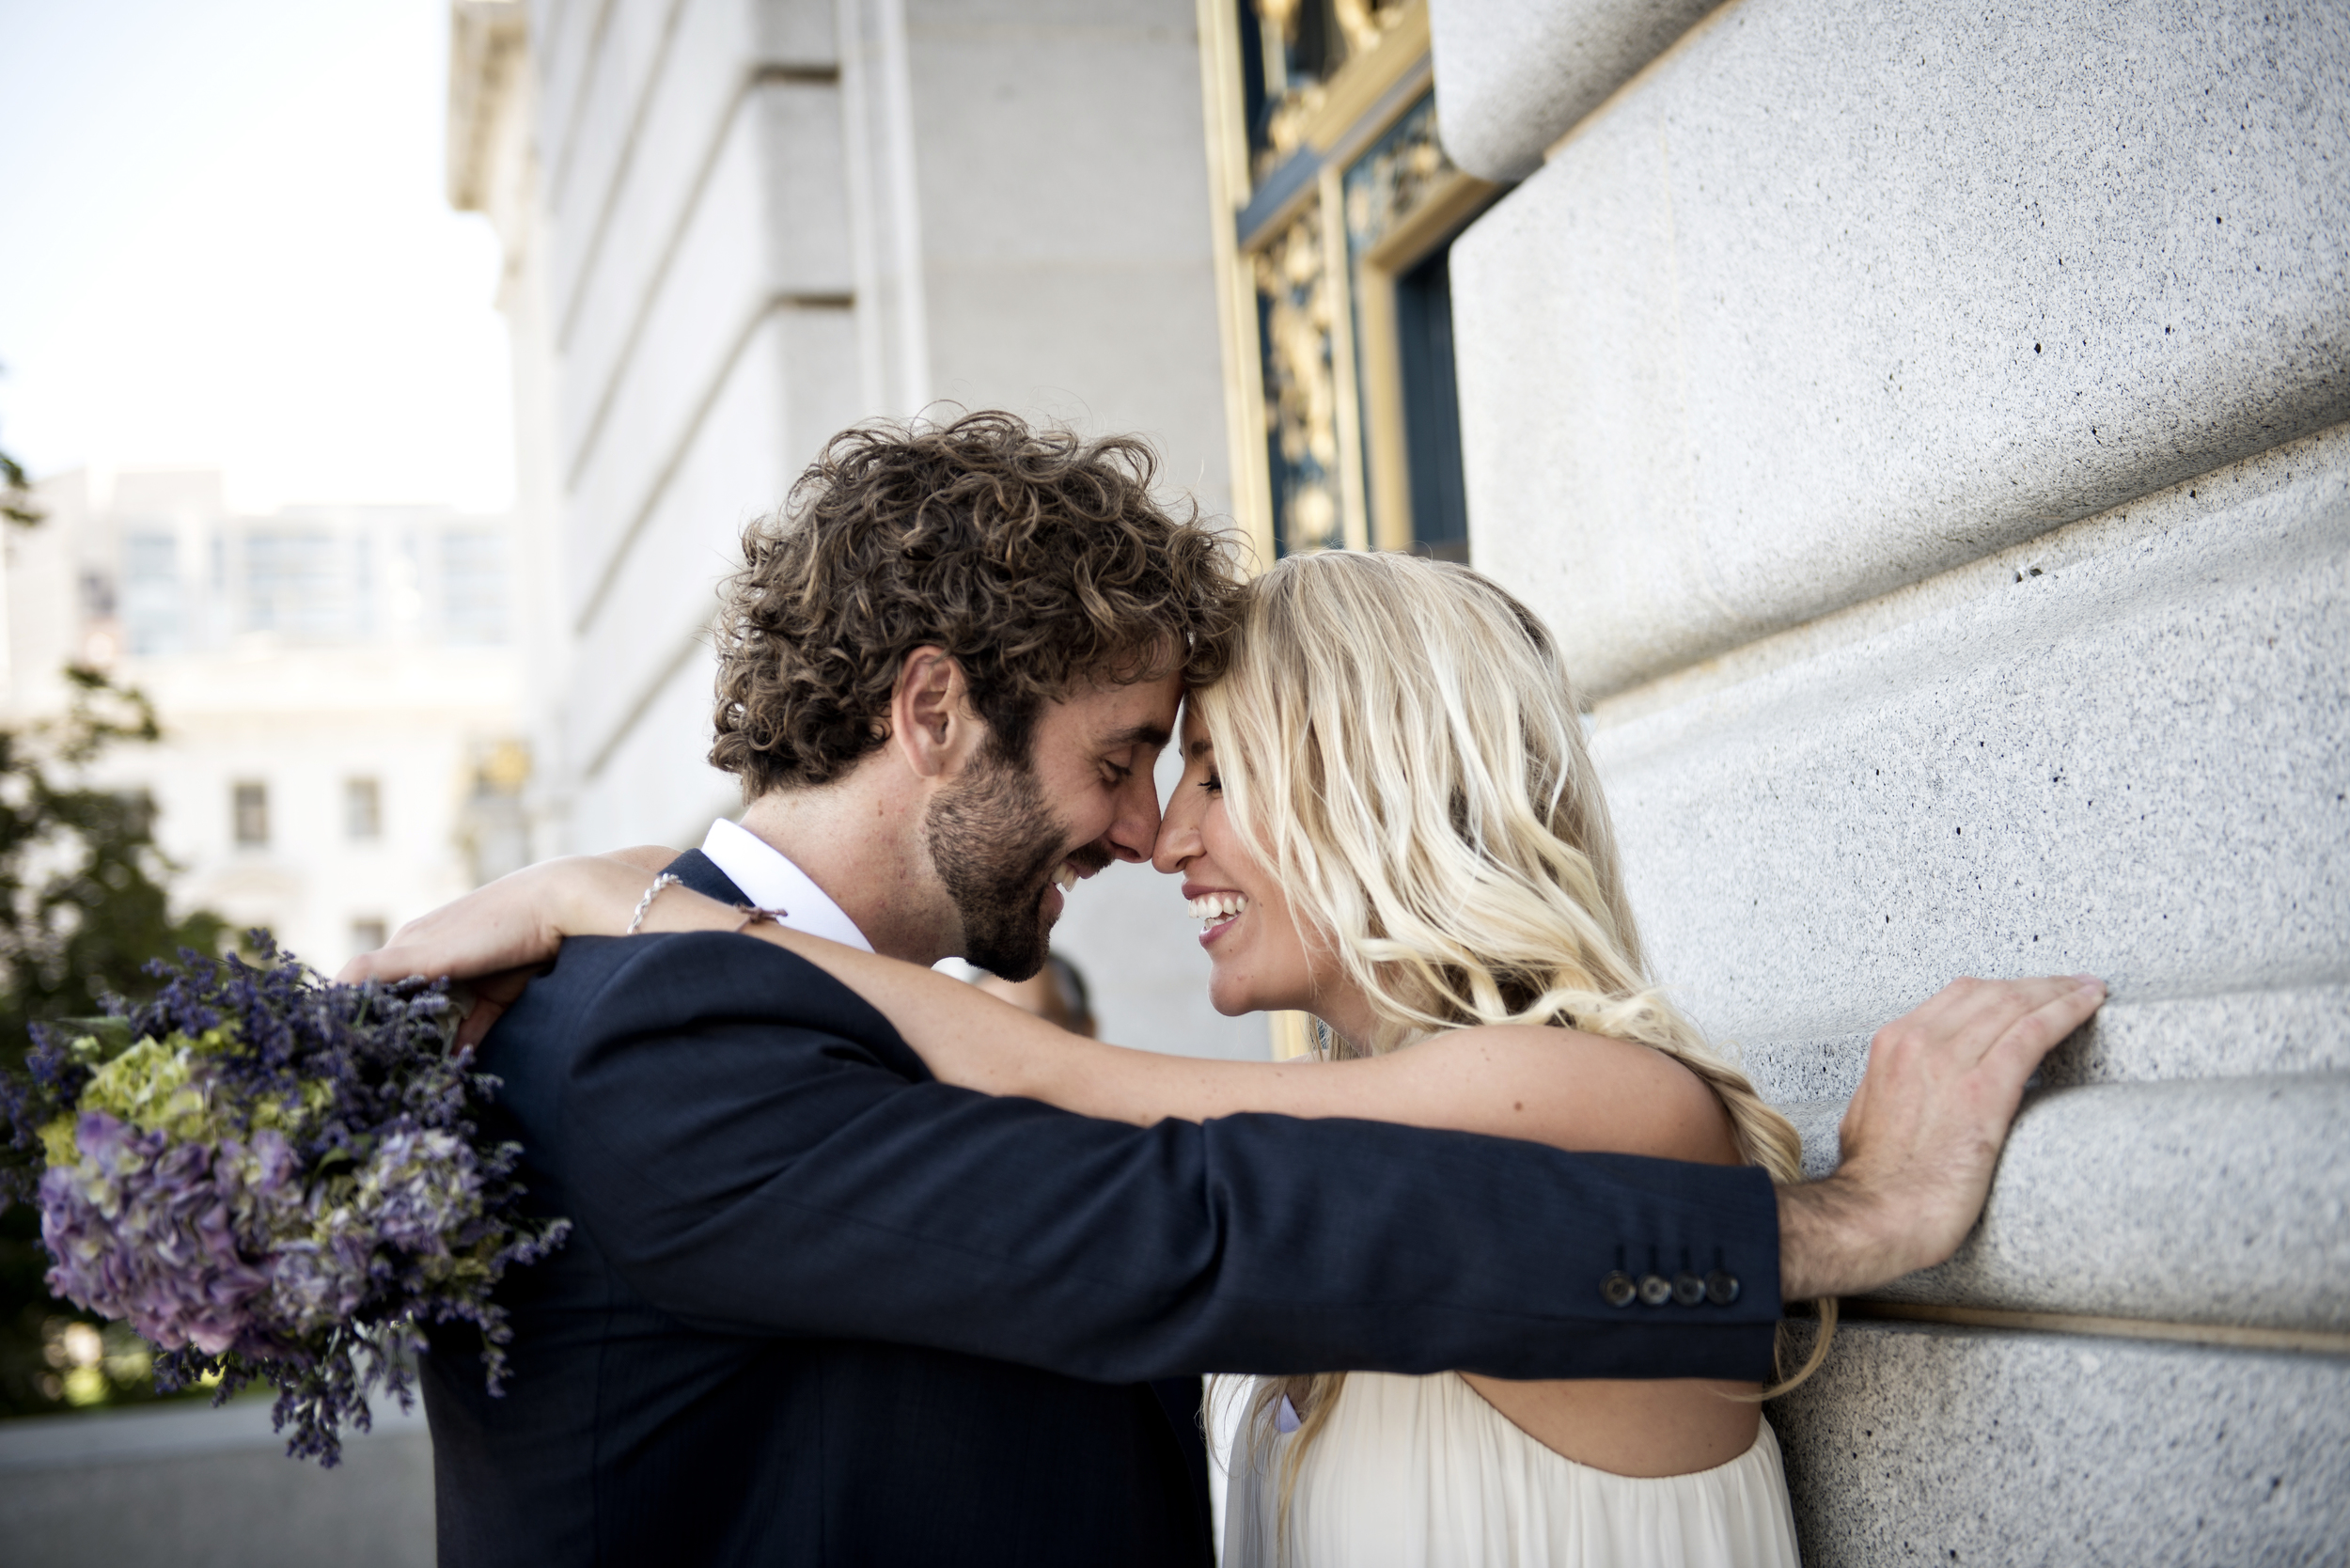 Stephan & Andrea enjoy their time outside of City Hall after having their wedding at the rotunda inside.